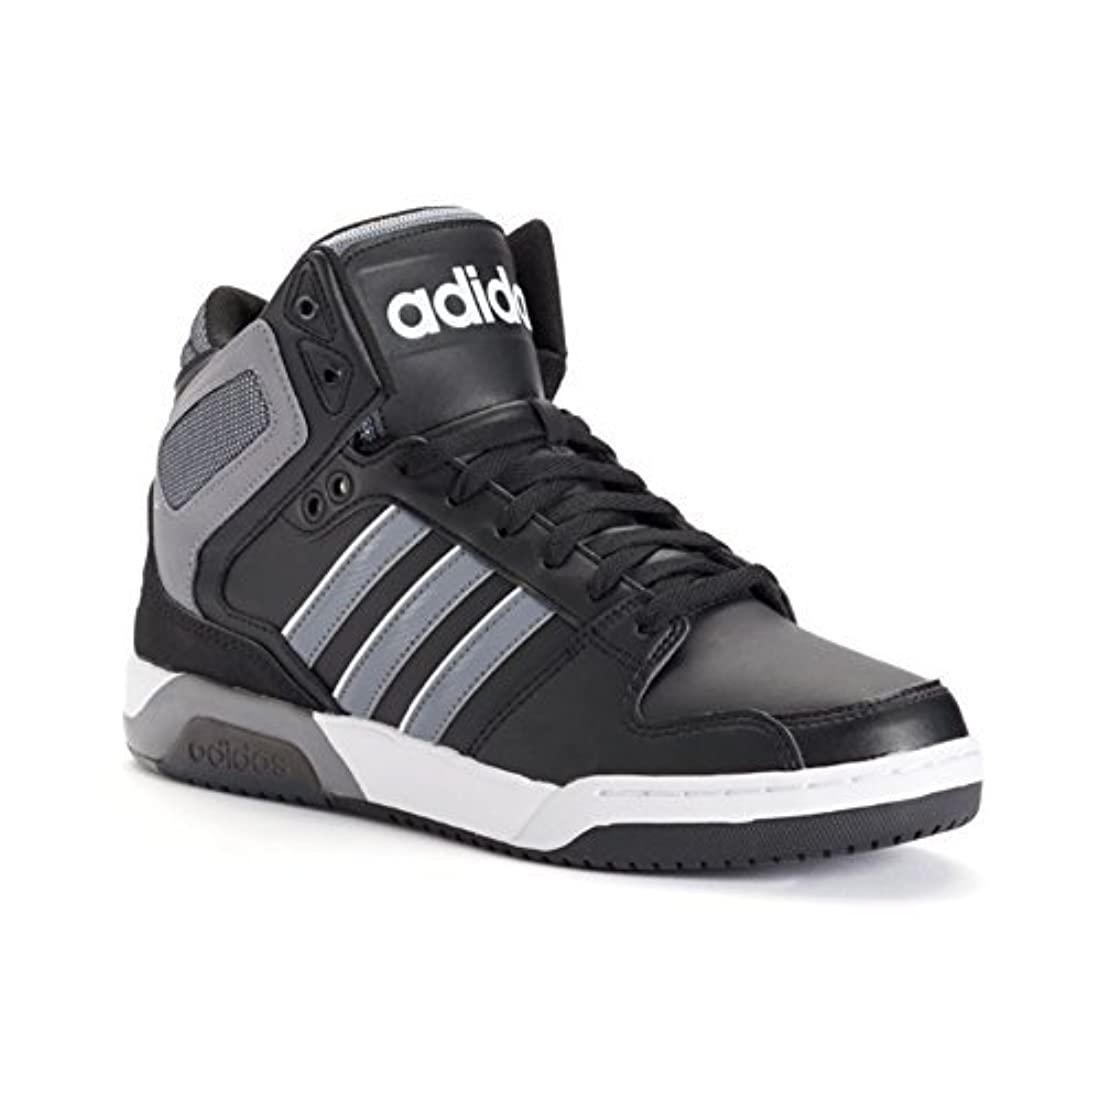 adidas neo men s bb9tis lifestyle basketball shoe bb9tis m